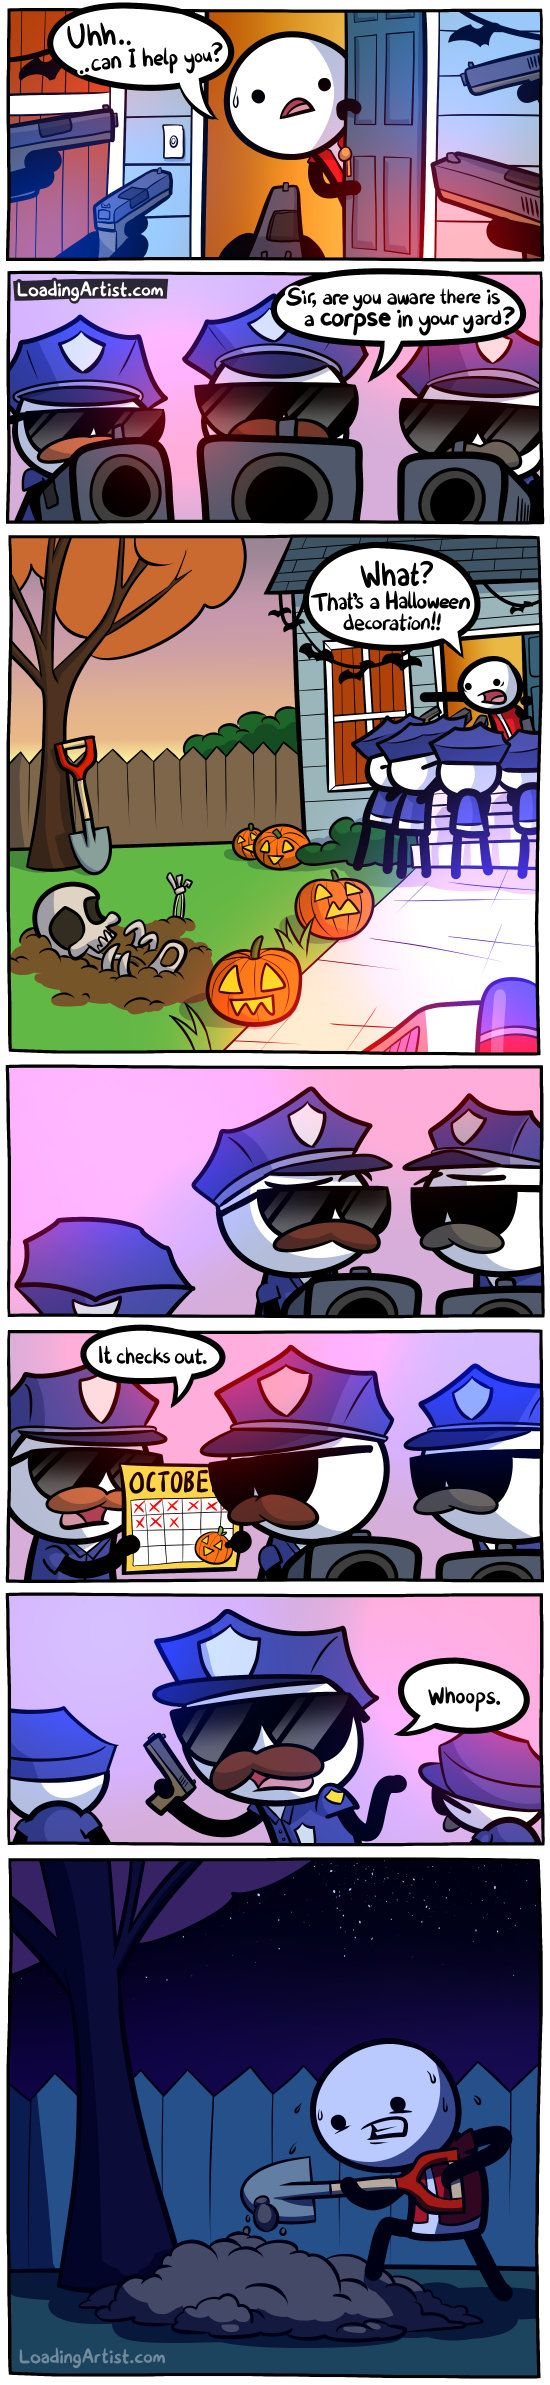 This is a code 10/31! Click to view the full comic!